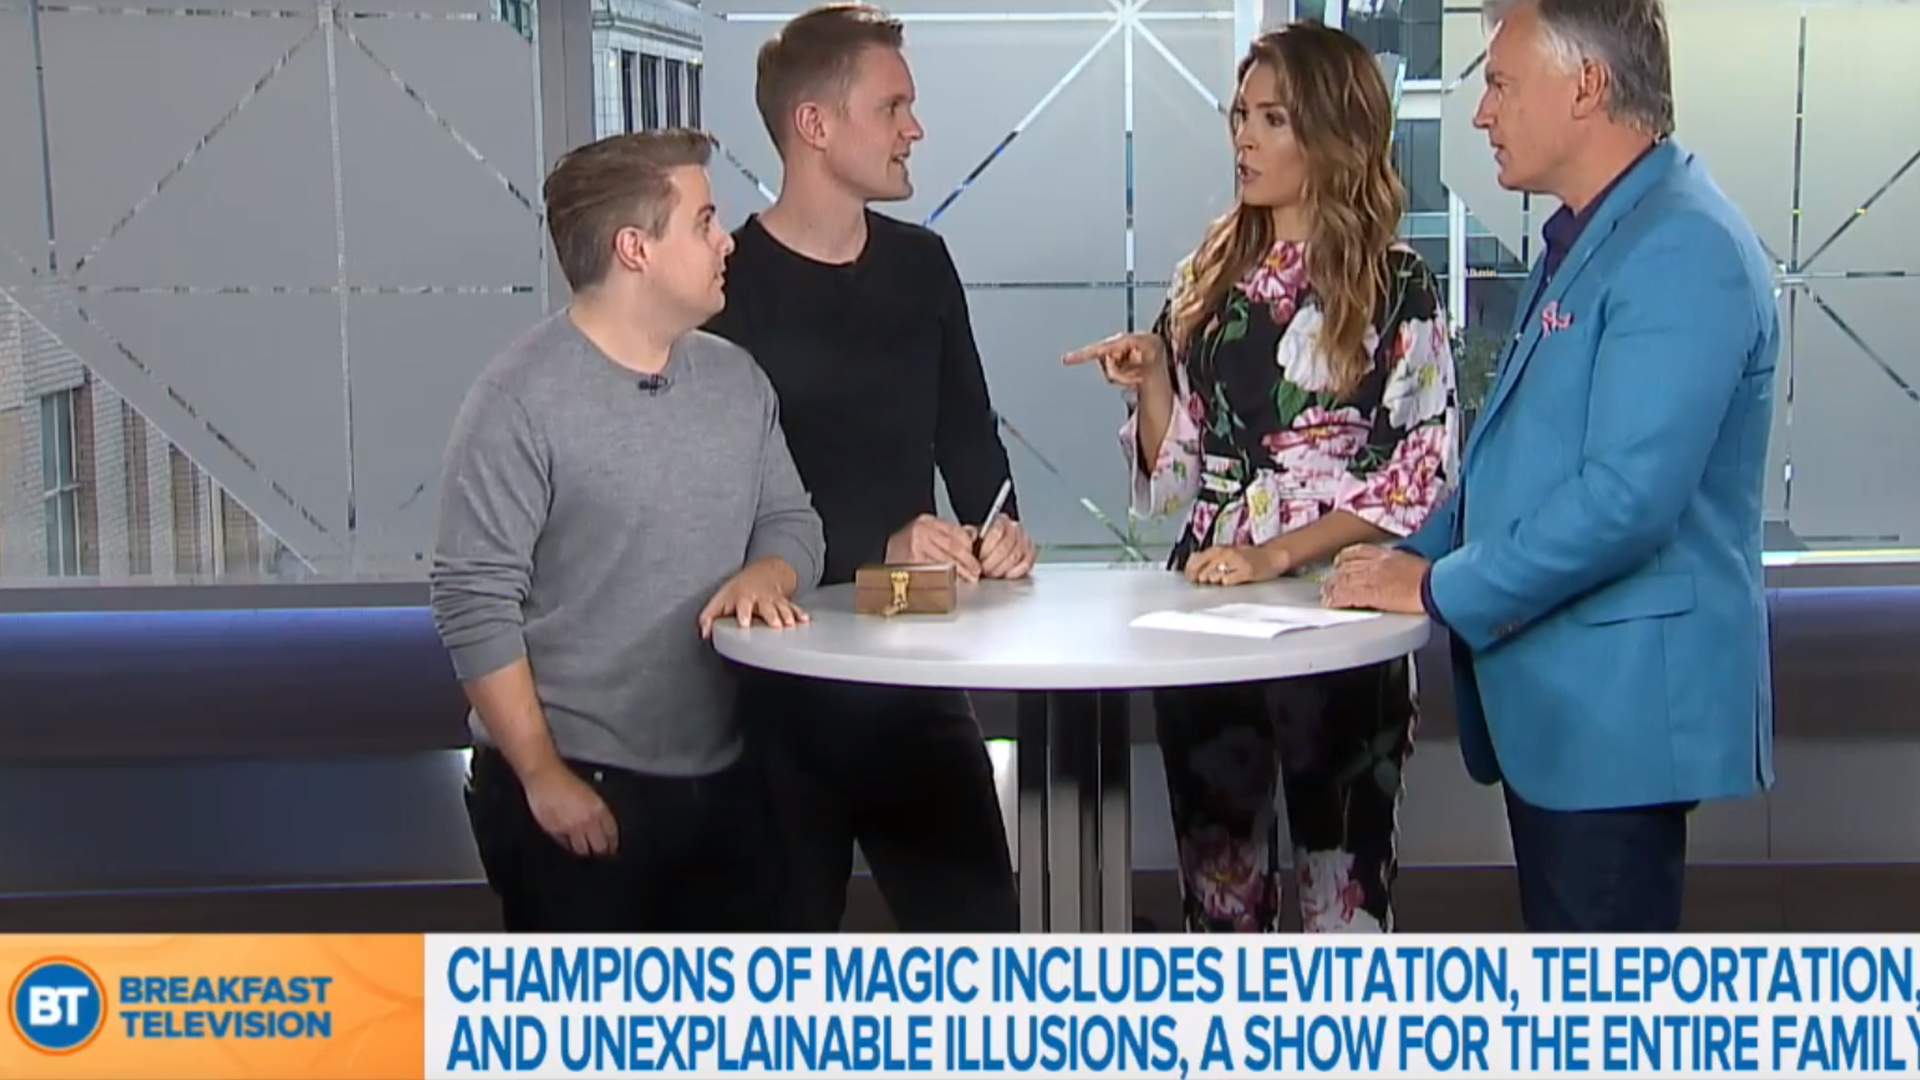 Video: Young & Strange on Breakfast TV Toronto